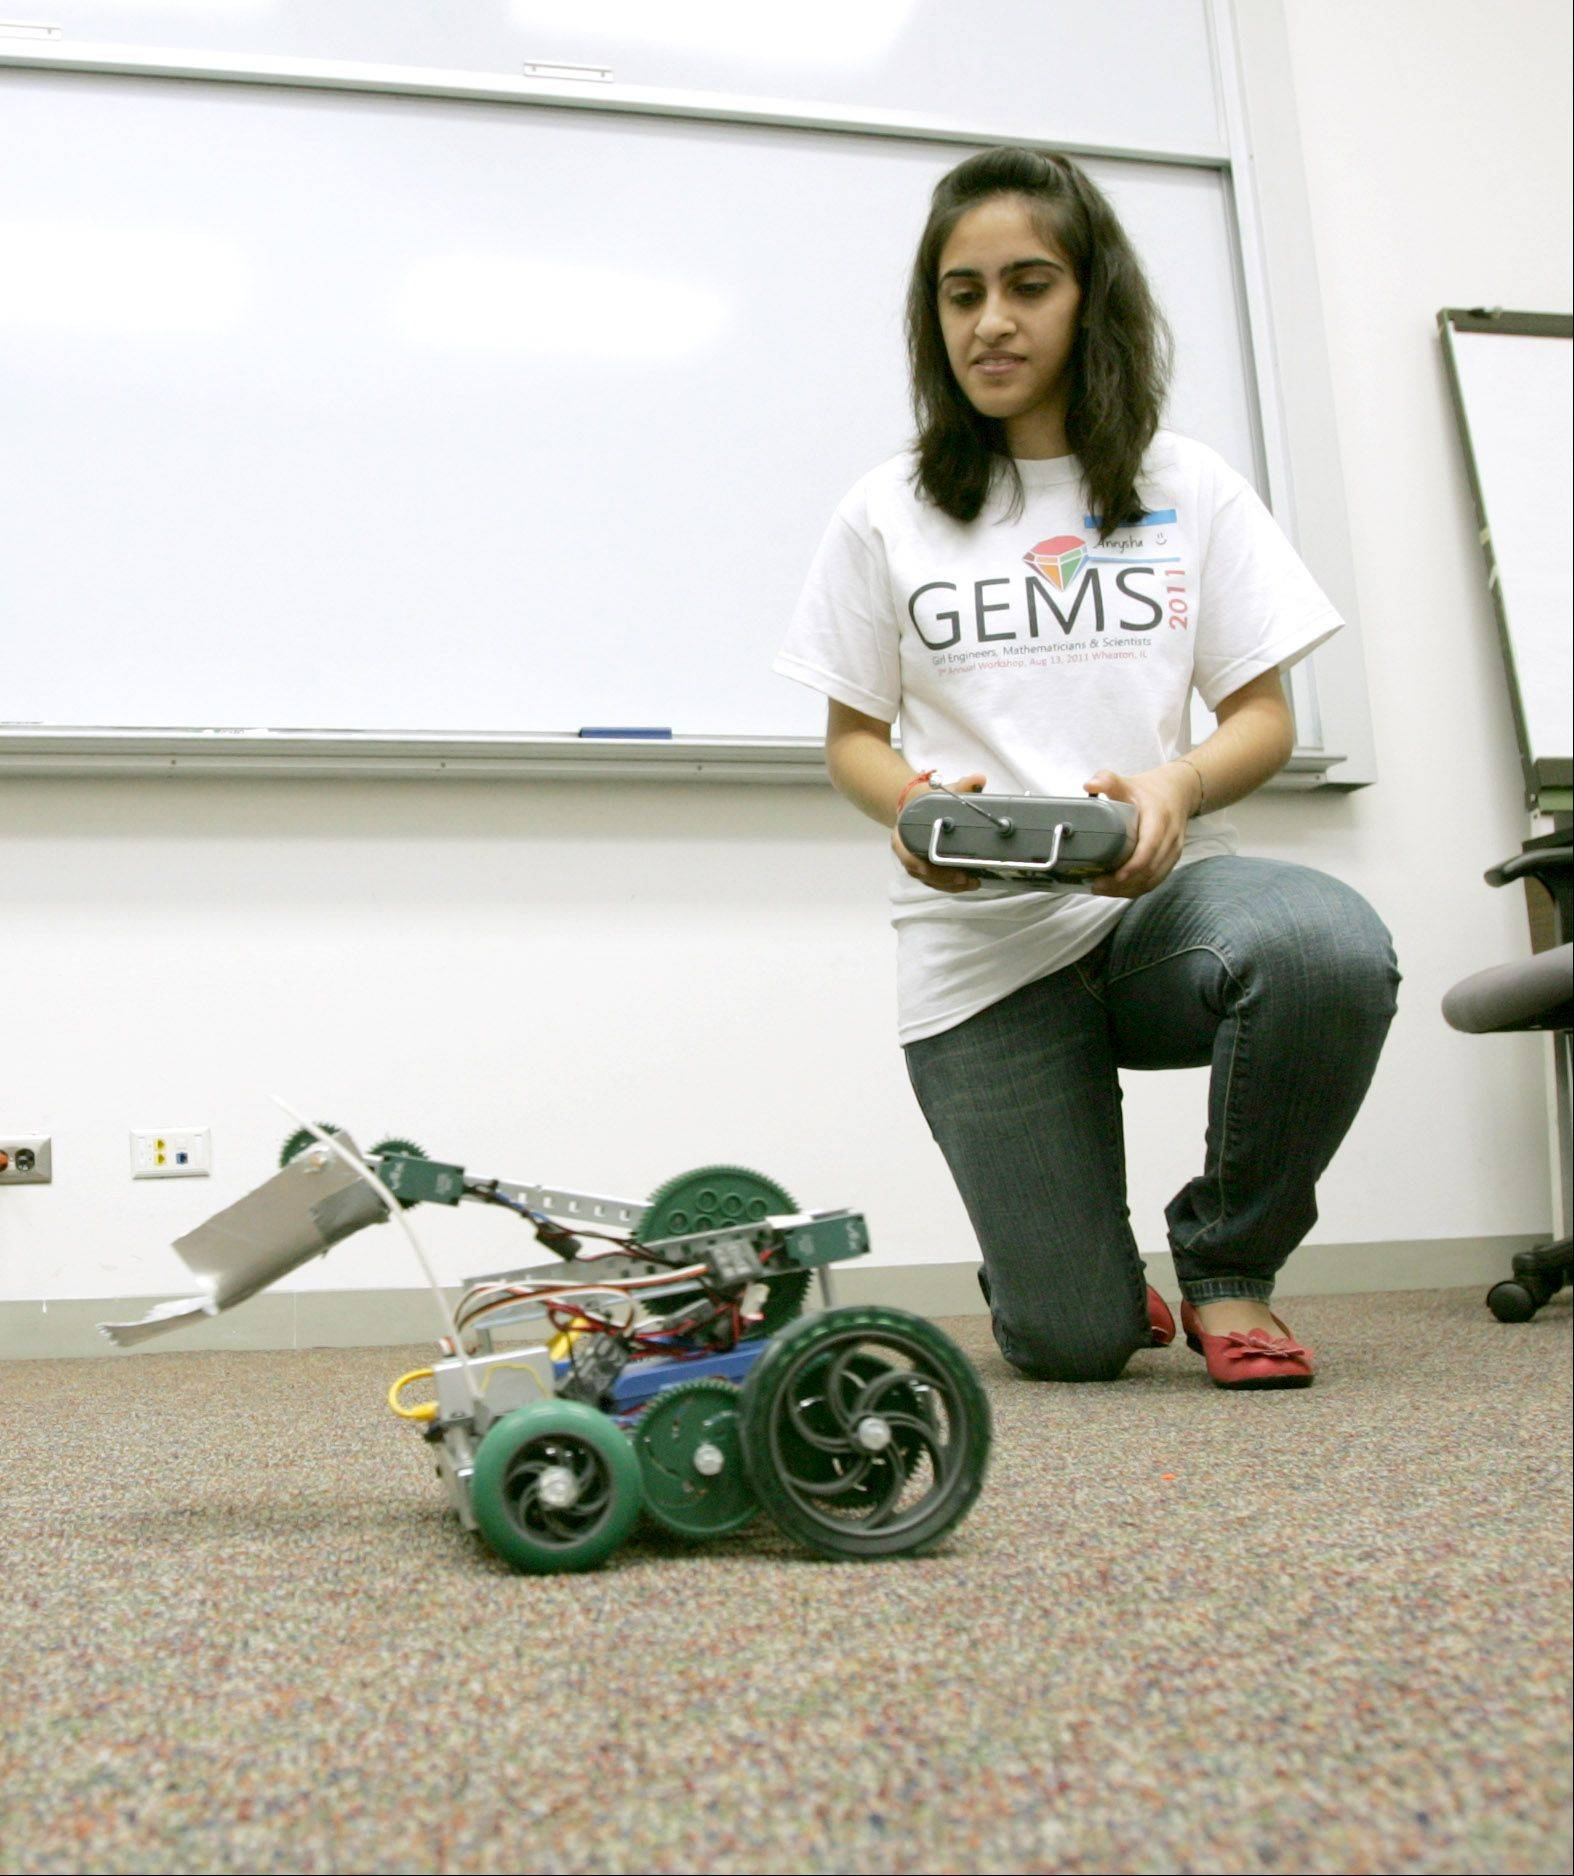 Aneysha Bhat of Neuqua Valley High School navigates her school's varsity robot during the second annual GEMS summer workshop for Girl Engineers Mathematicians and Scientists in 2011. The fourth annual workshop, scheduled for 12:30 to 4:30 p.m. Wednesday, Aug. 7, at Naperville Central High School, features 17 panelists in physics, biology/medicine, technology and engineering/design.